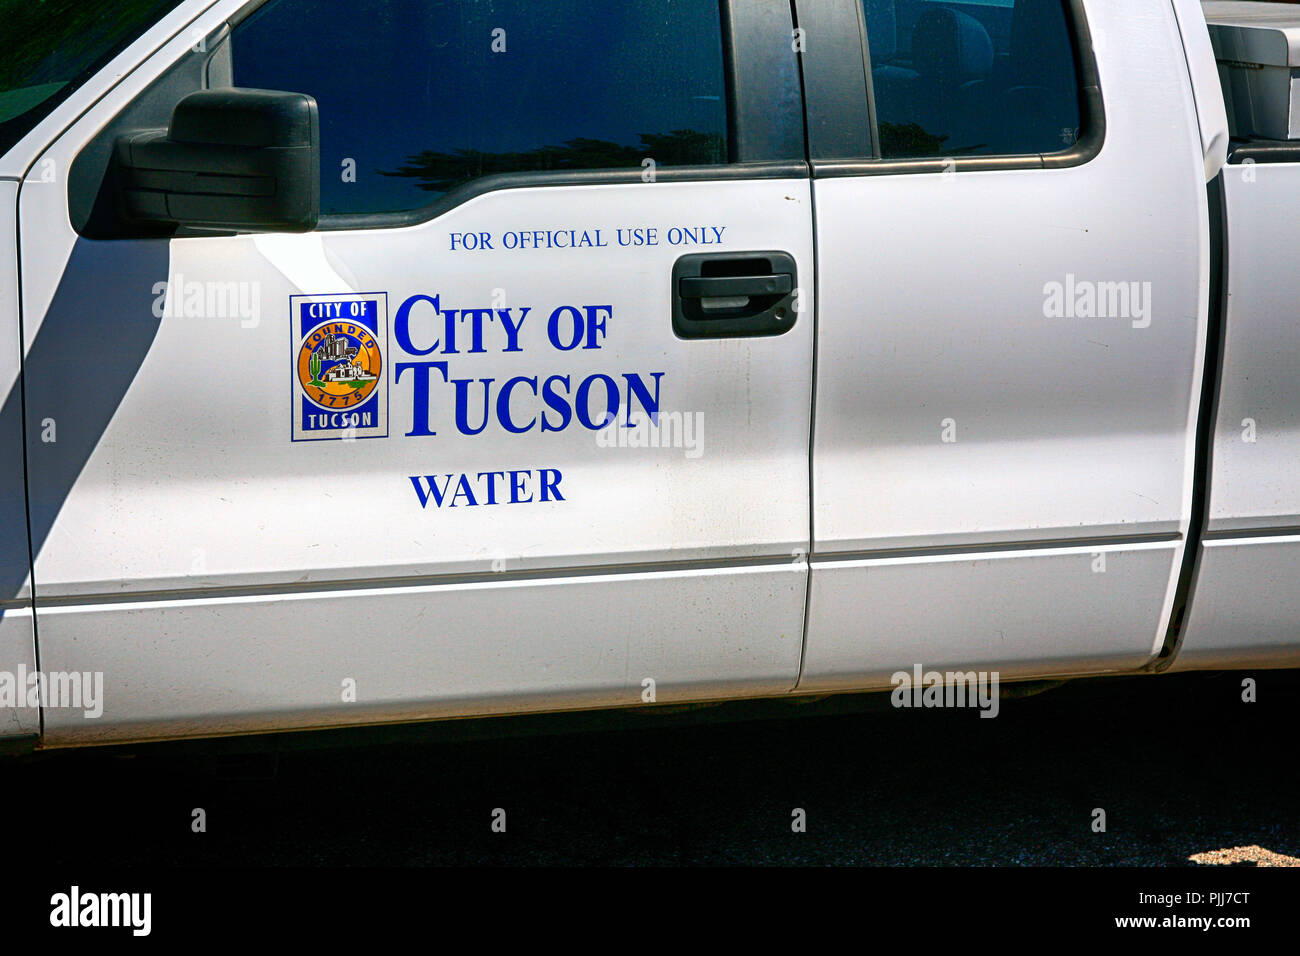 Official vehicle of the City of Tucson Water Dept - Stock Image